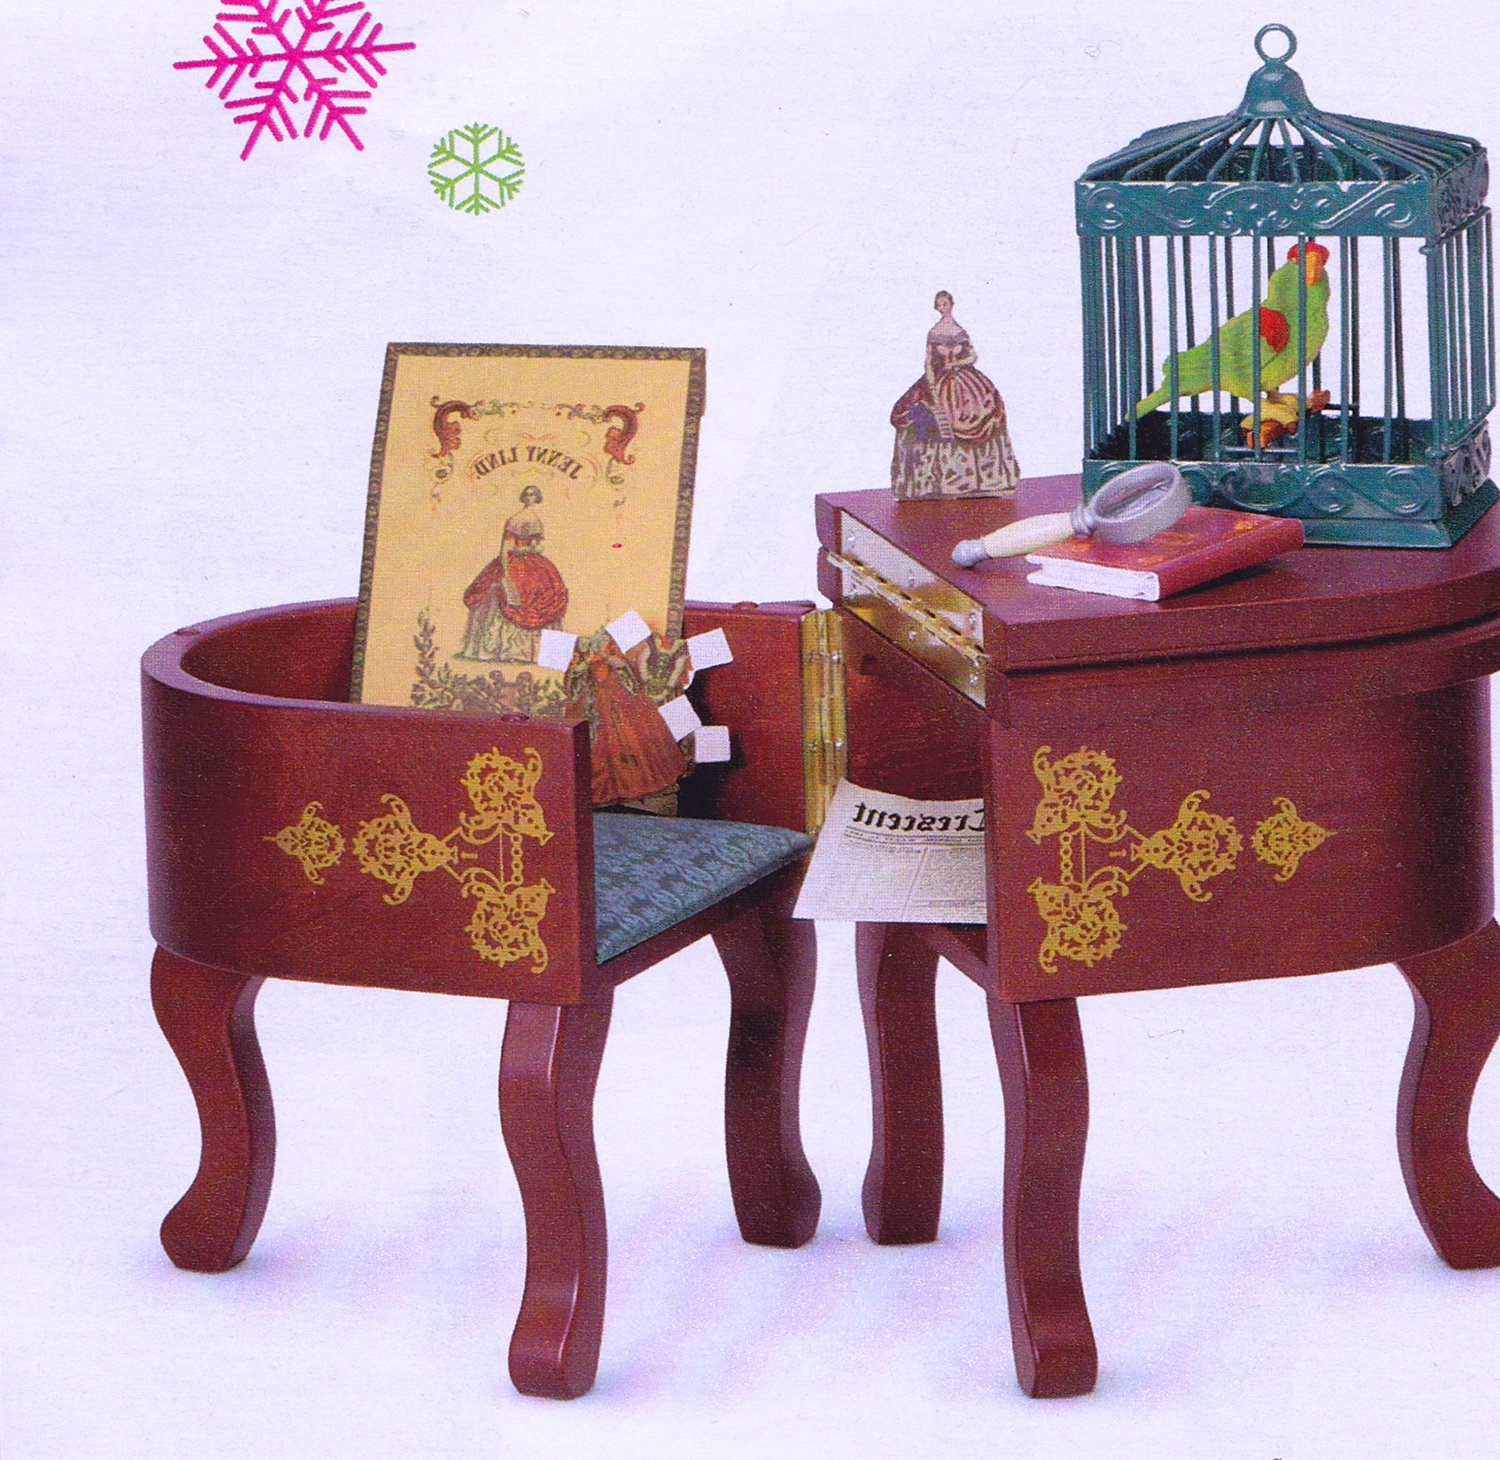 Authentic Parlor Desk & seat For American Girl 18 inch Dolls